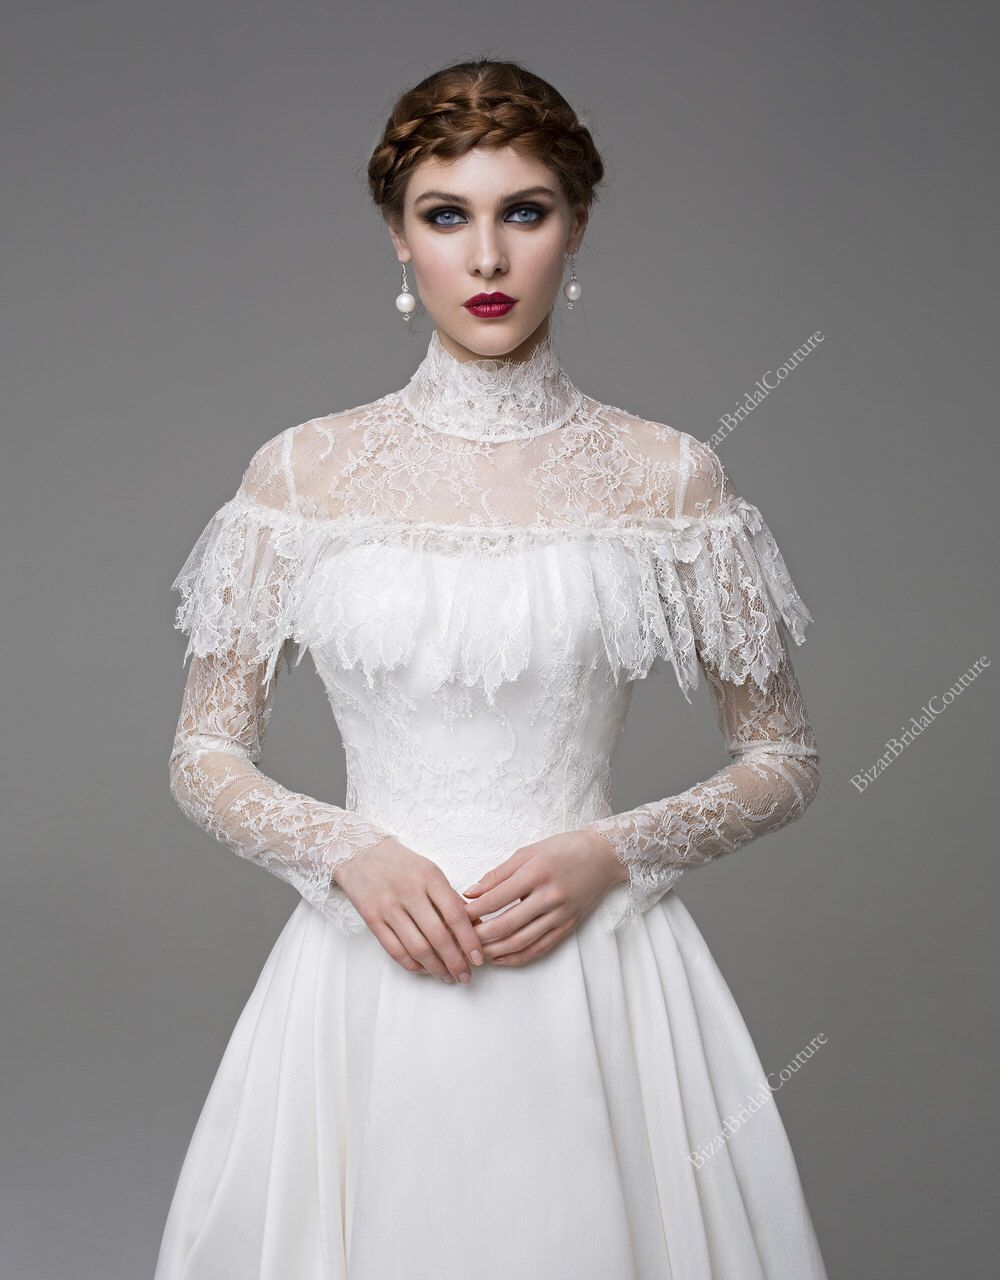 Long sleeve bridal gowncocounique wedding gownsimple wedding